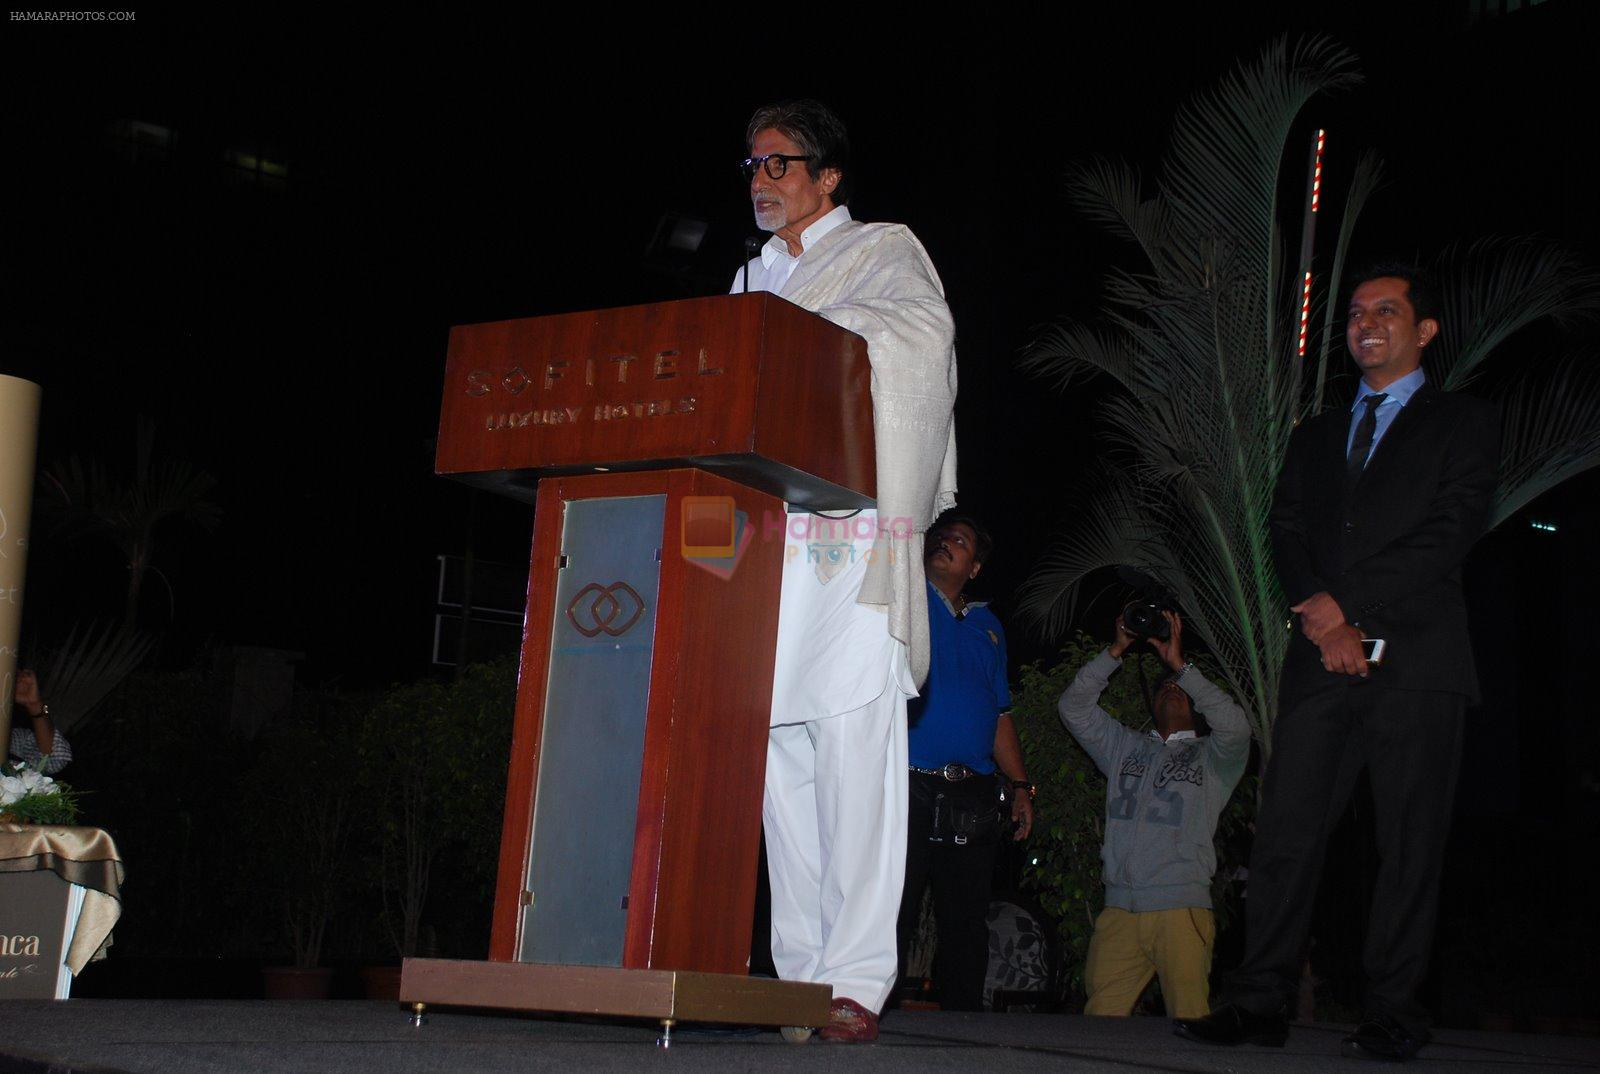 Amitabh Bachchan at Rohit Khilnani's book launch in Bandra, Mumbai on 22nd Jan 2015